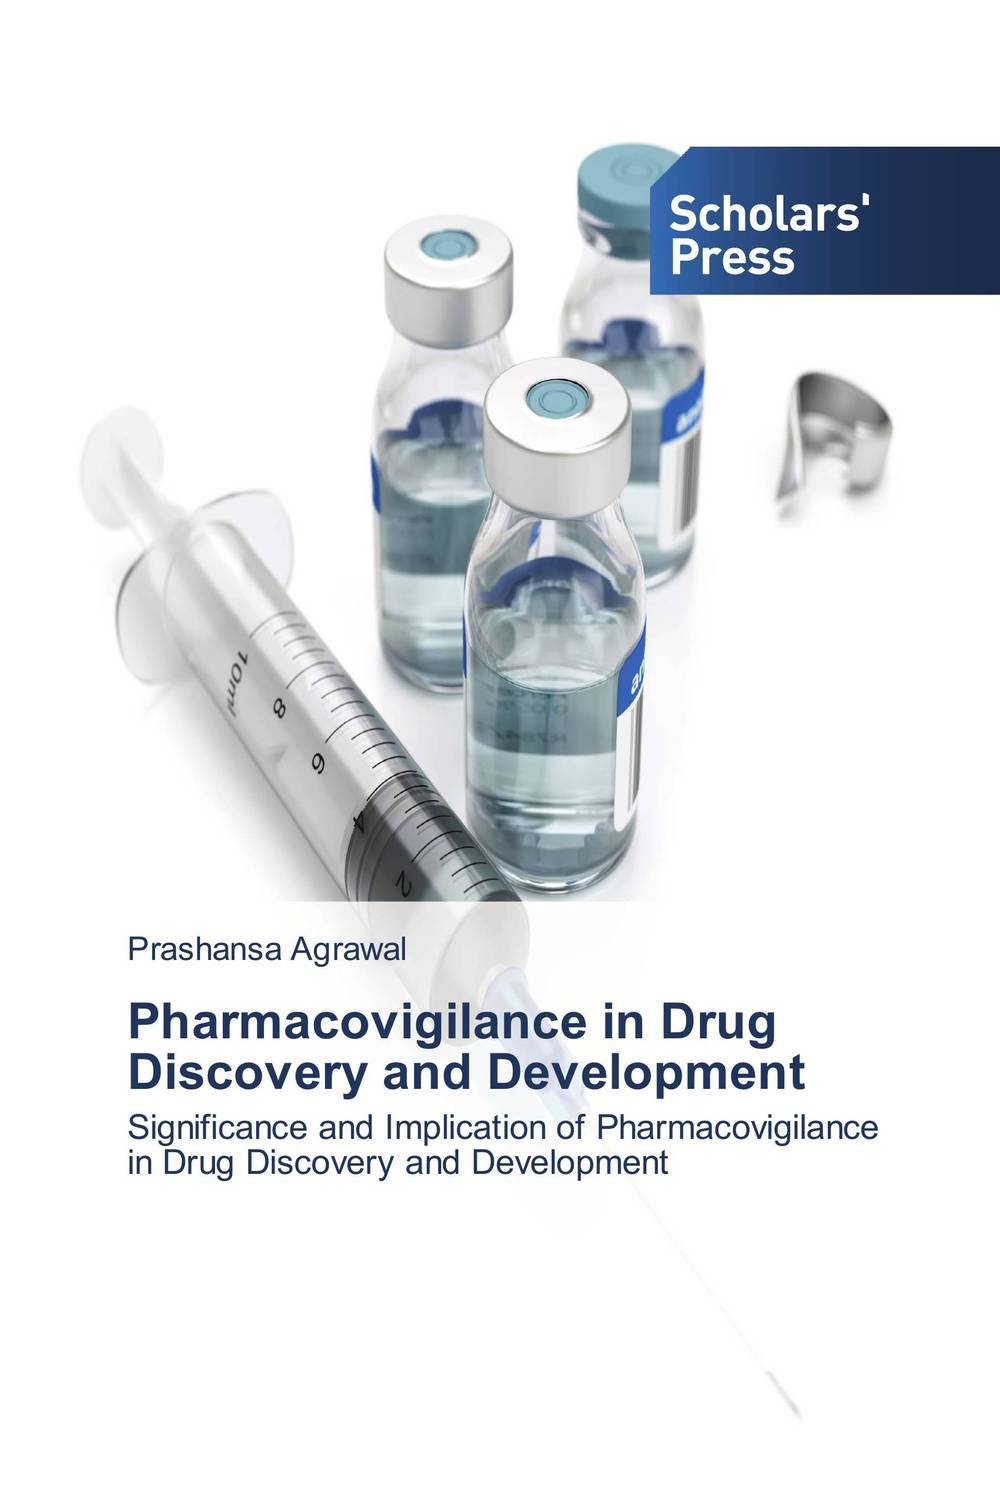 Pharmacovigilance in Drug Discovery and Development fossil часы fossil es4196 коллекция idealist